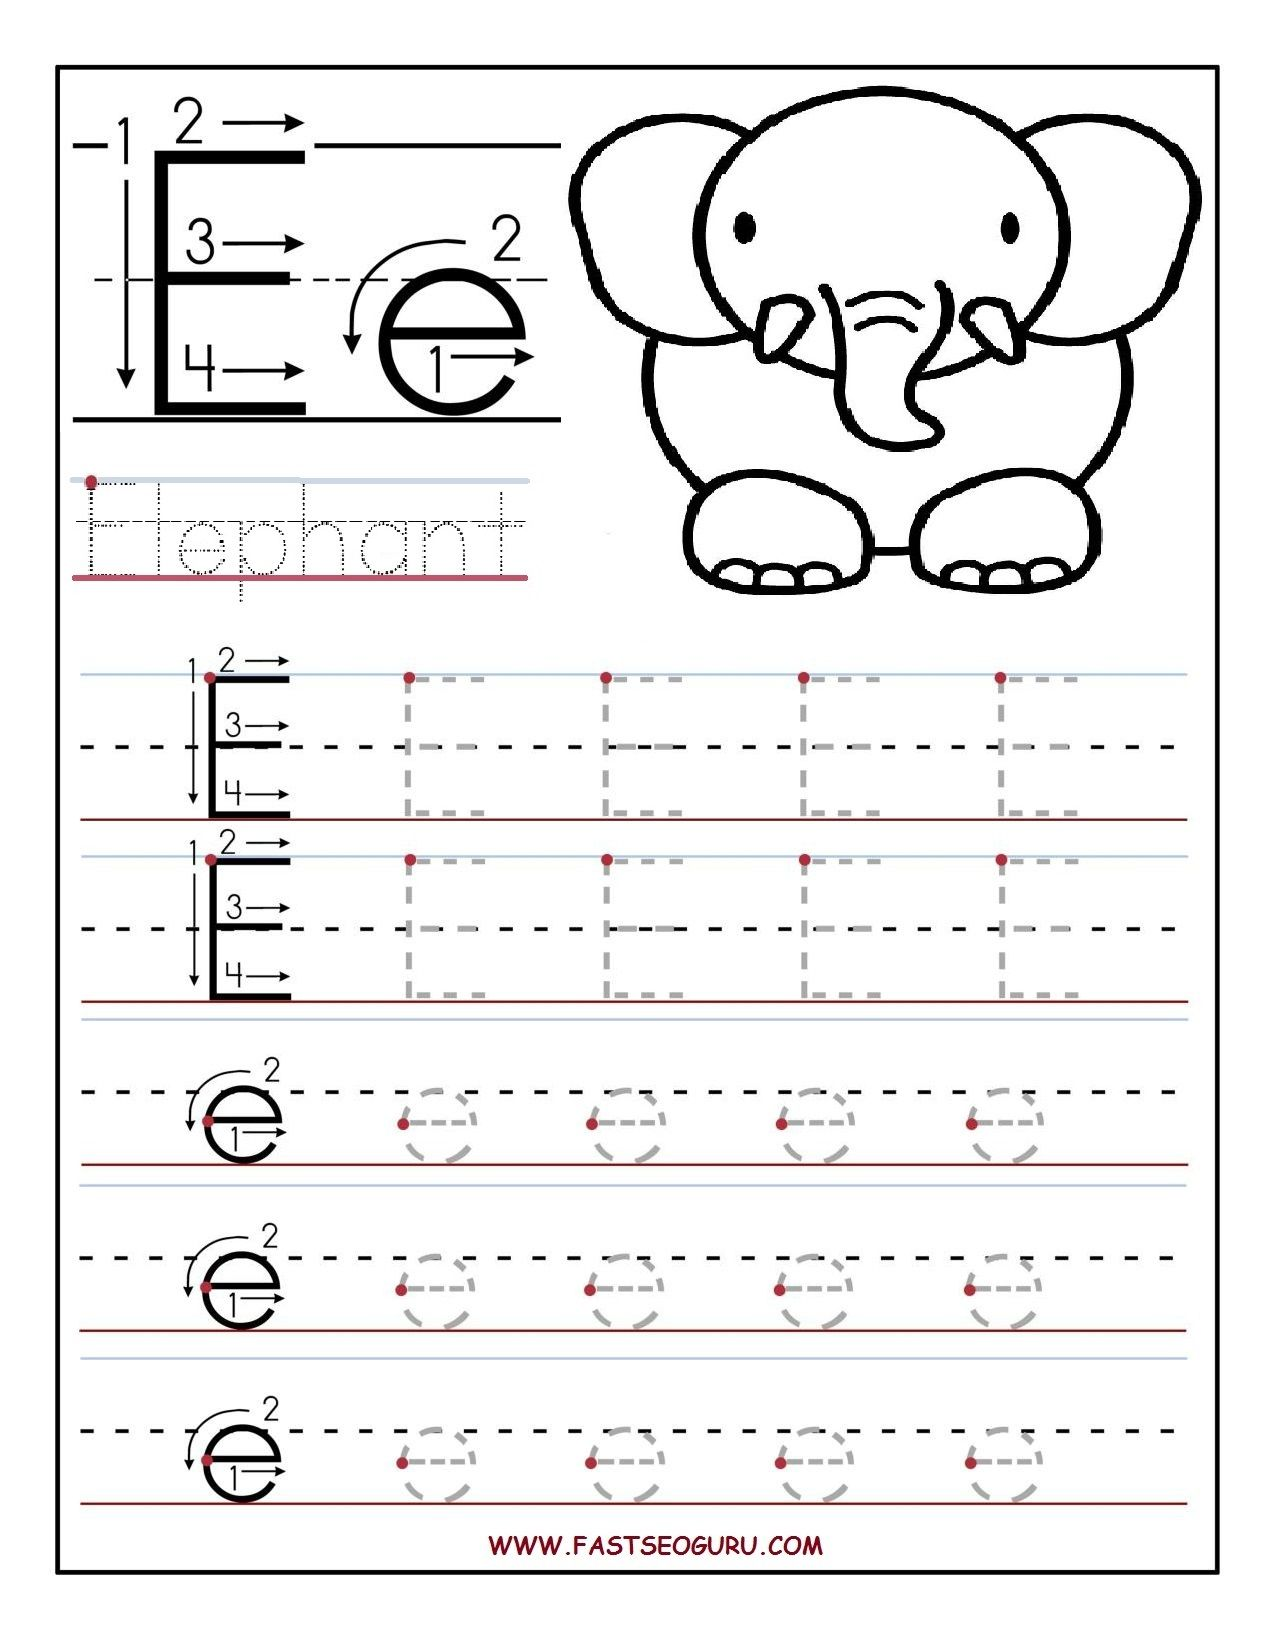 Printable Letter E Tracing Worksheets For Preschool Jpg 1 275 1 650 Pixels Alphabet Worksheets Preschool Tracing Worksheets Preschool Preschool Letters